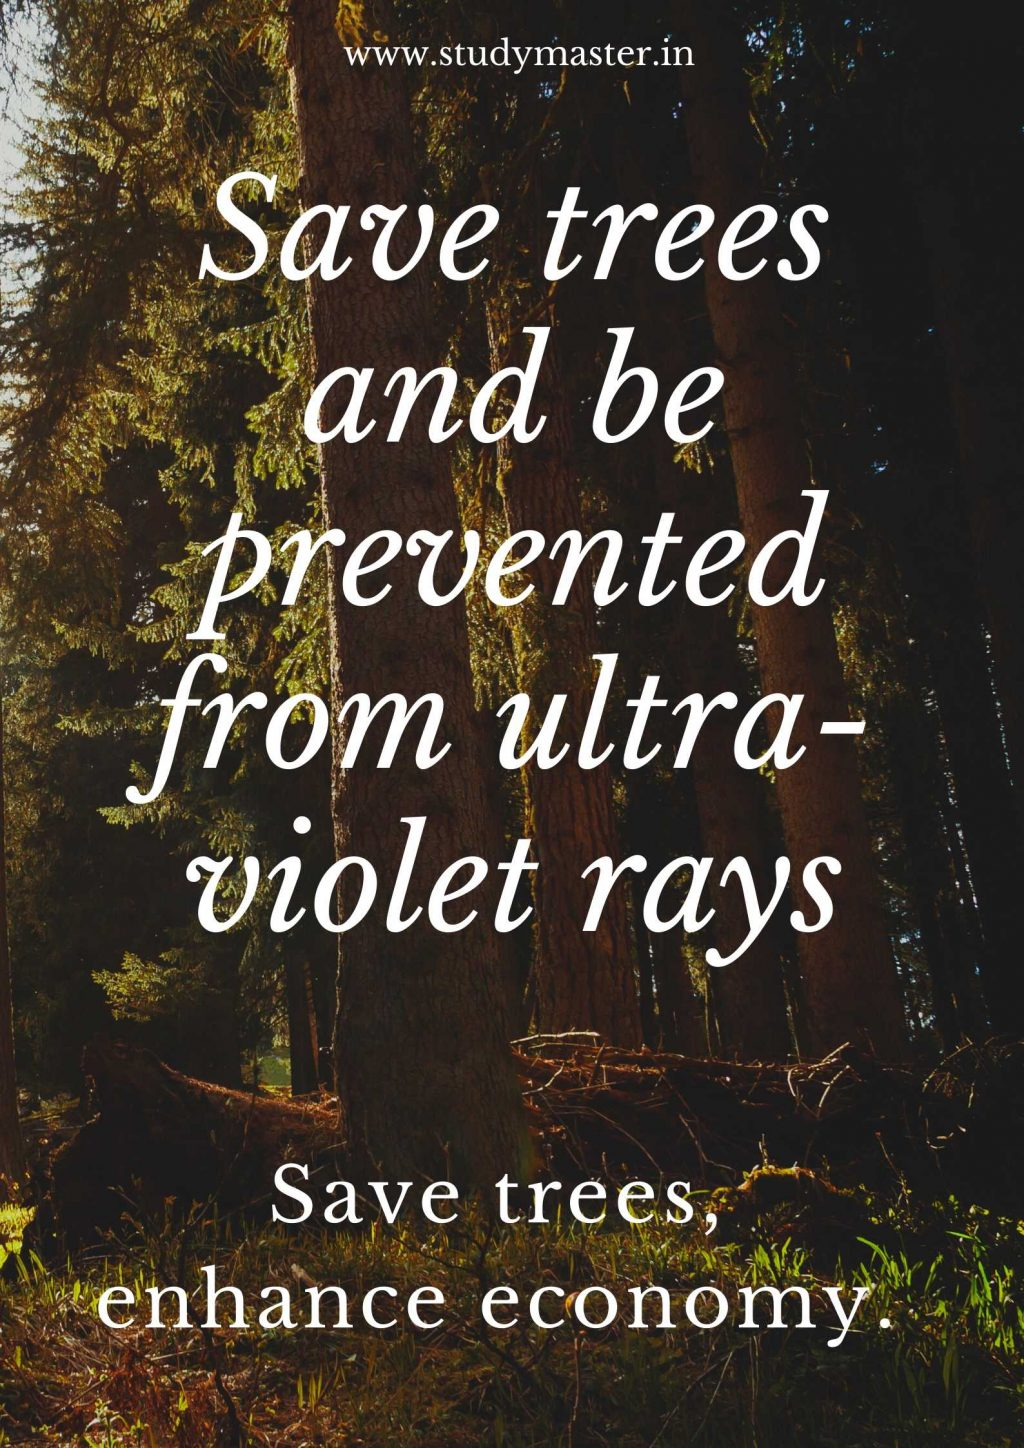 how to make poster on save trees